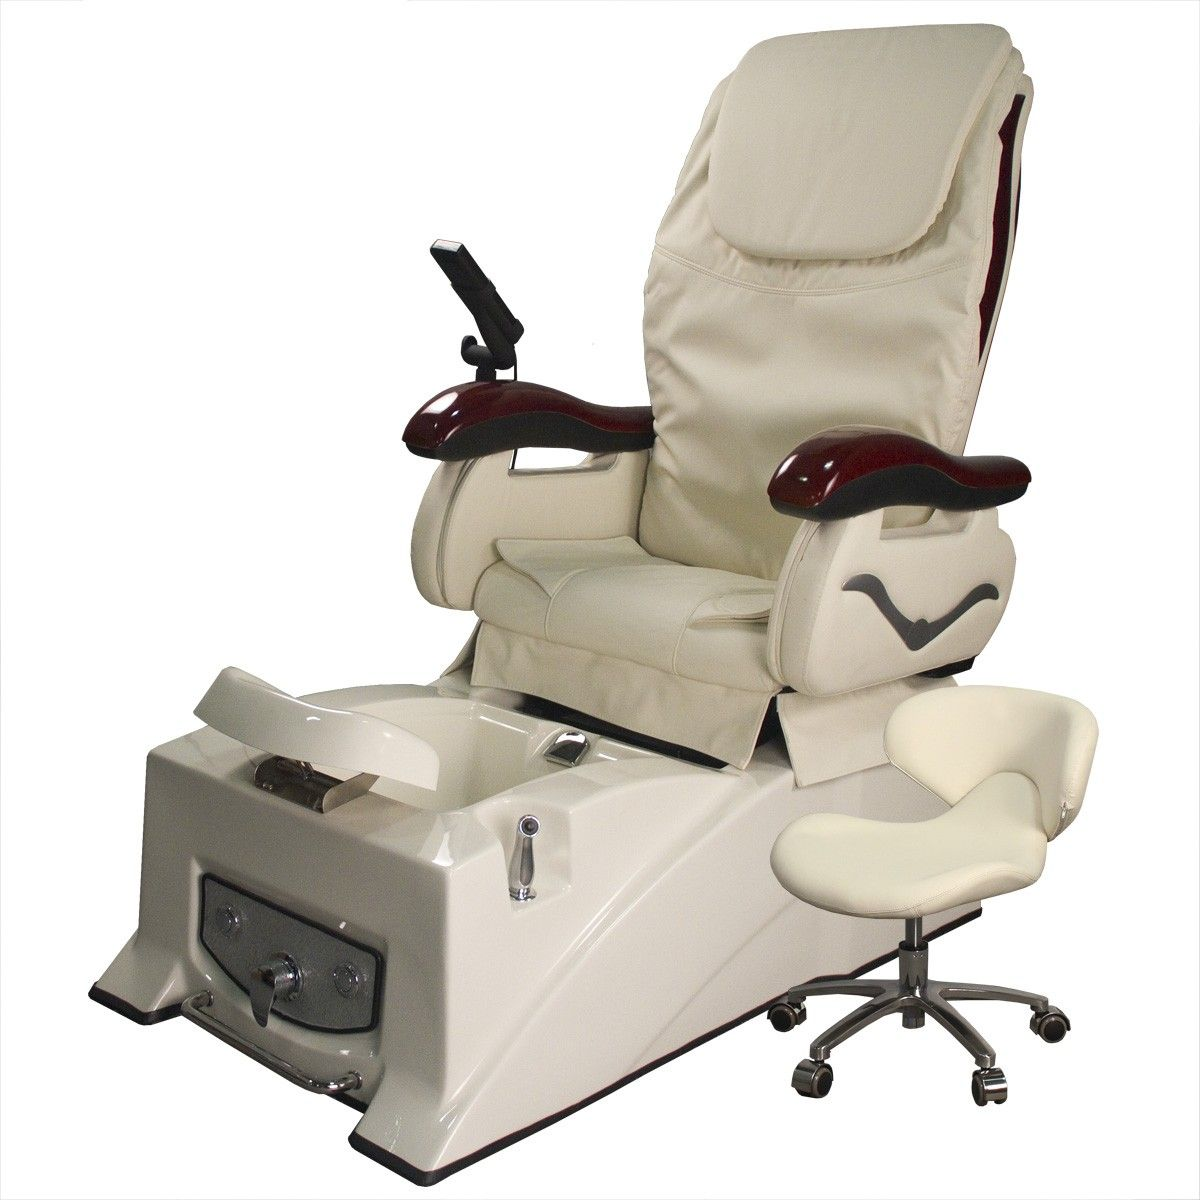 Madison II Pedicure Chair in Ivory CLEARANCE Salon